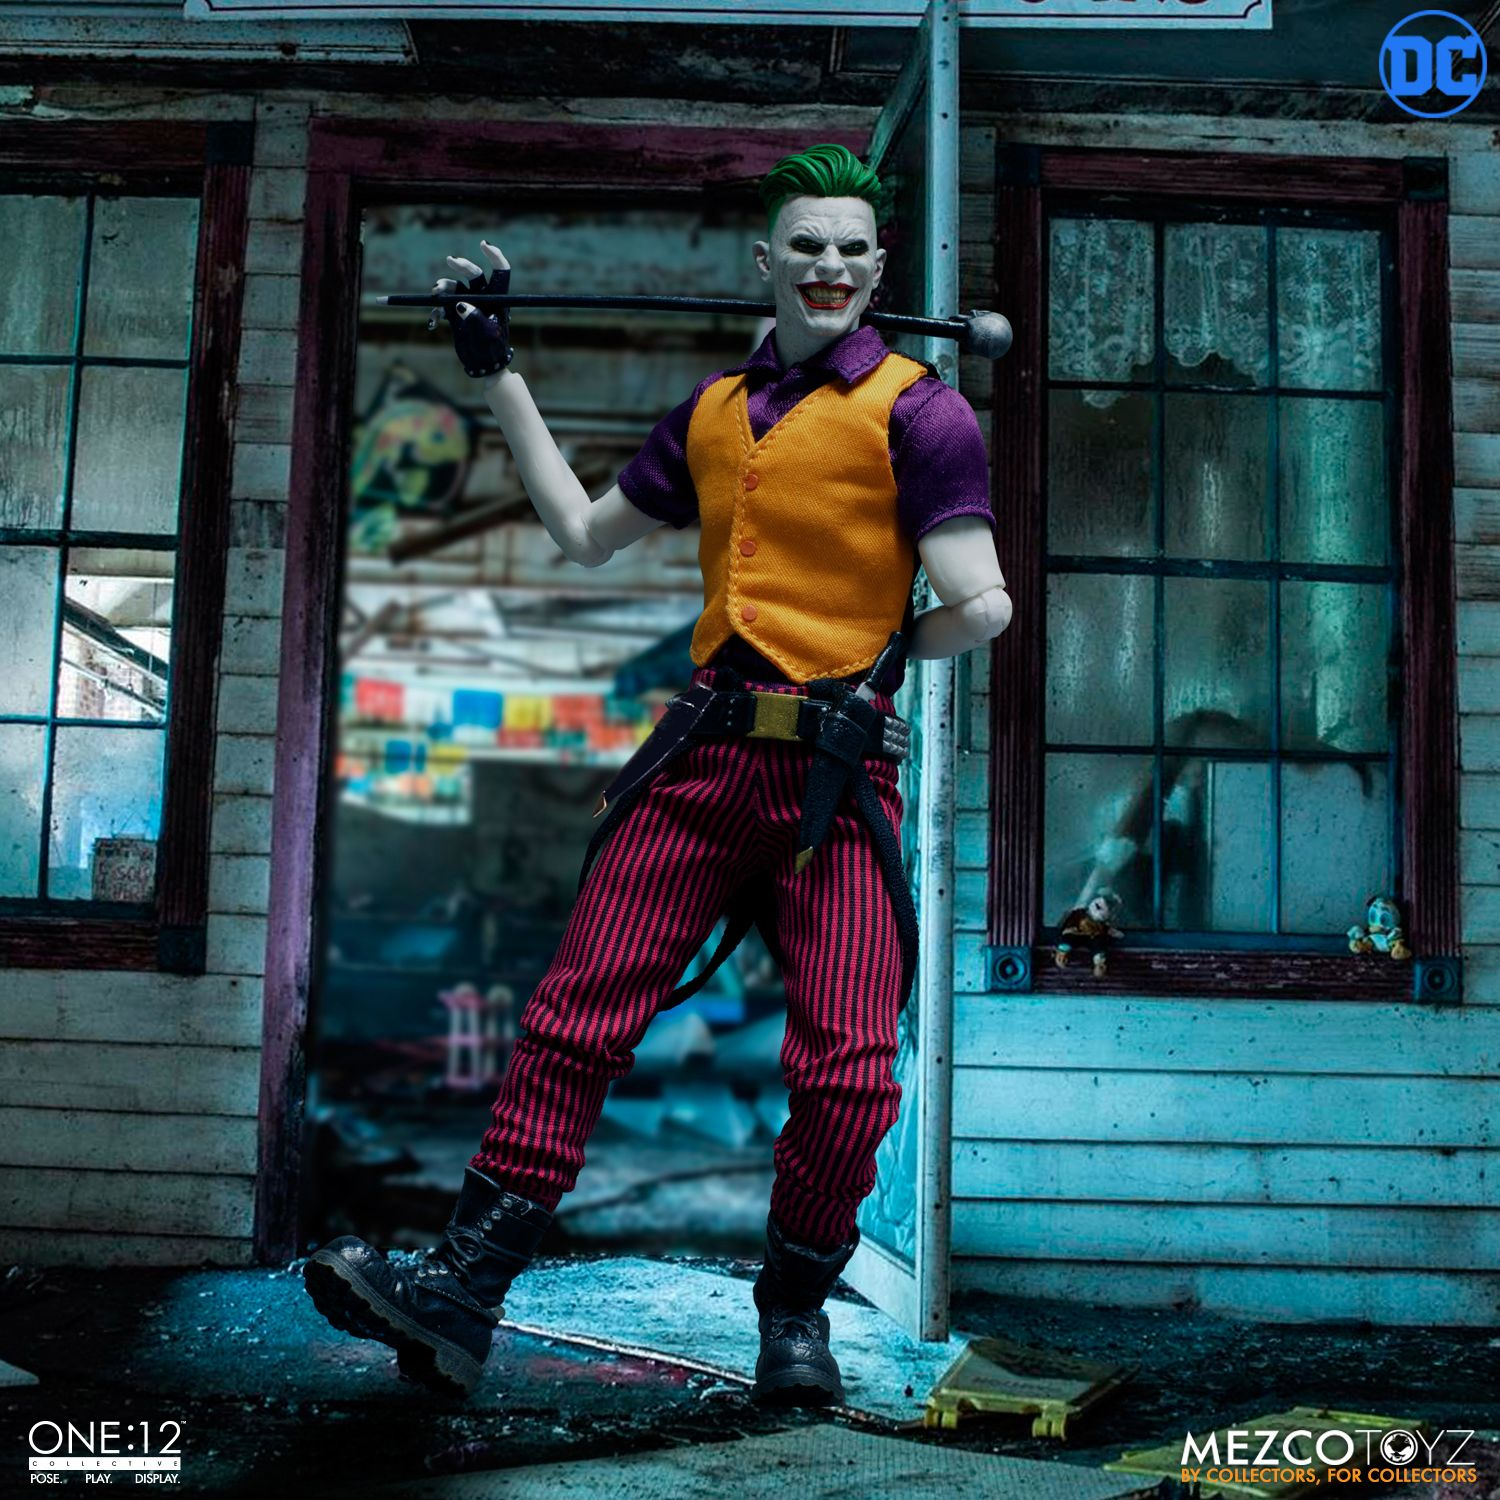 Mezco Toyz 76231 The Joker